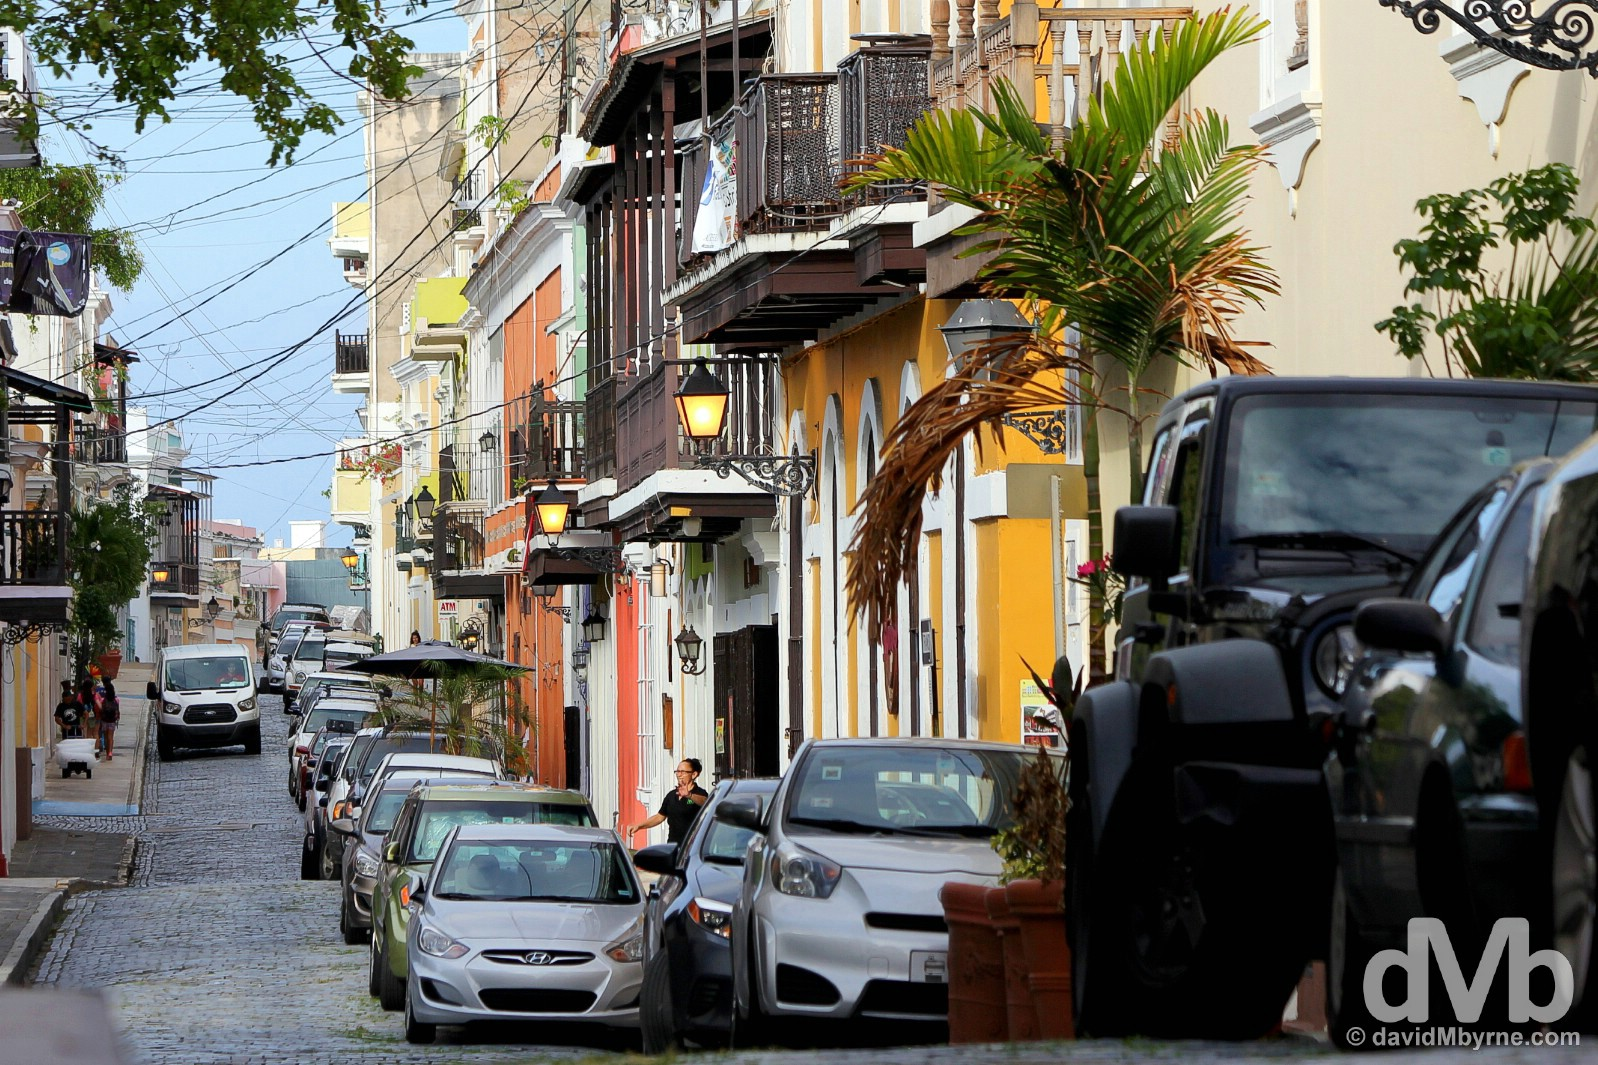 Calle de San Sabastian in Old San Juan, Puerto Rico, Greater Antilles. June 2, 2015.